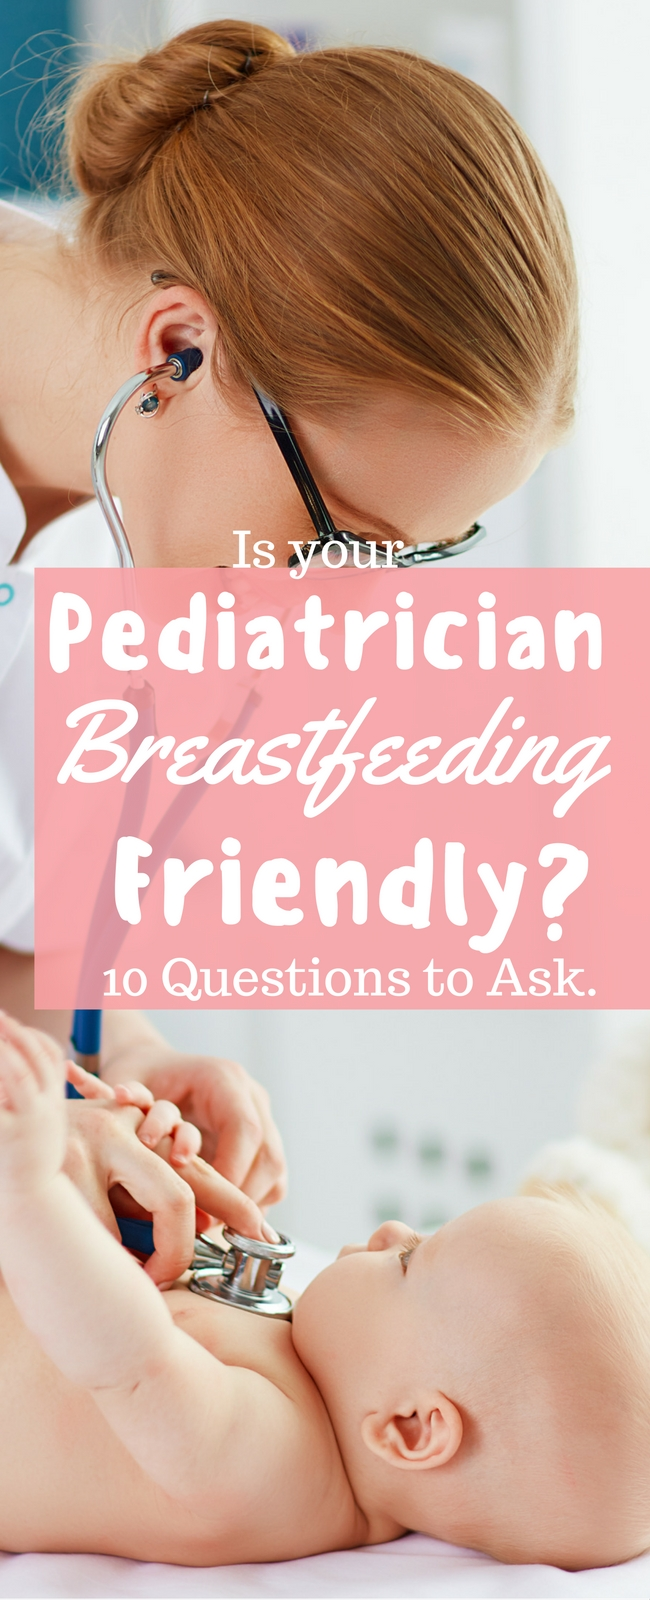 Is your pediatrician breastfeeding friendly? Here are 13 questions to ask.